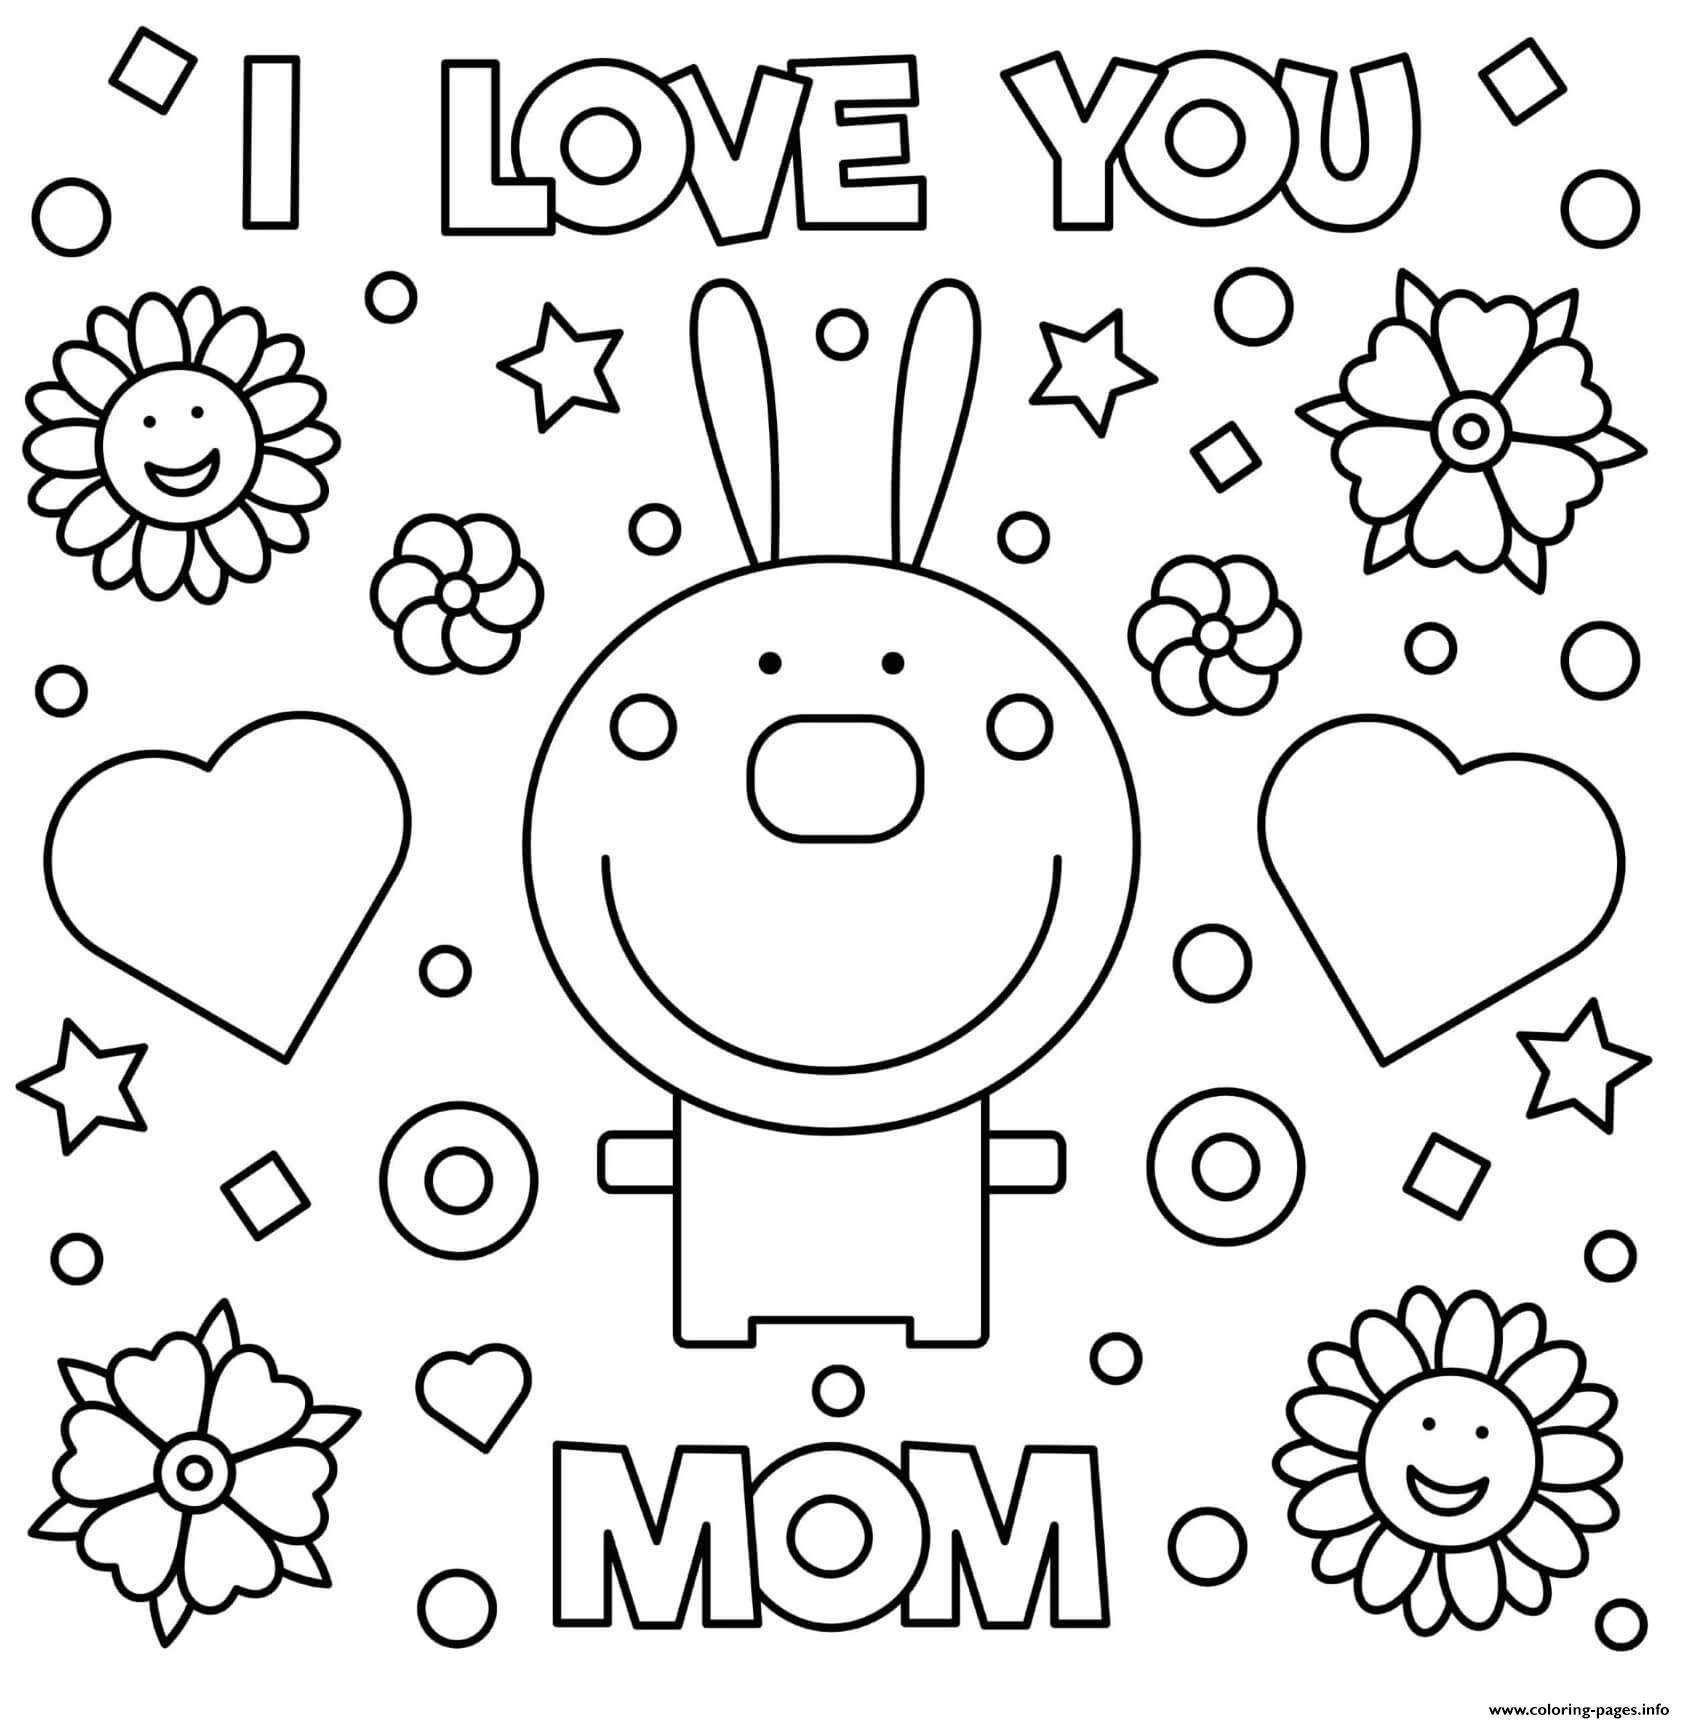 i love mom coloring pages printable i love you mom coloring pages to download and print for free printable mom coloring love i pages